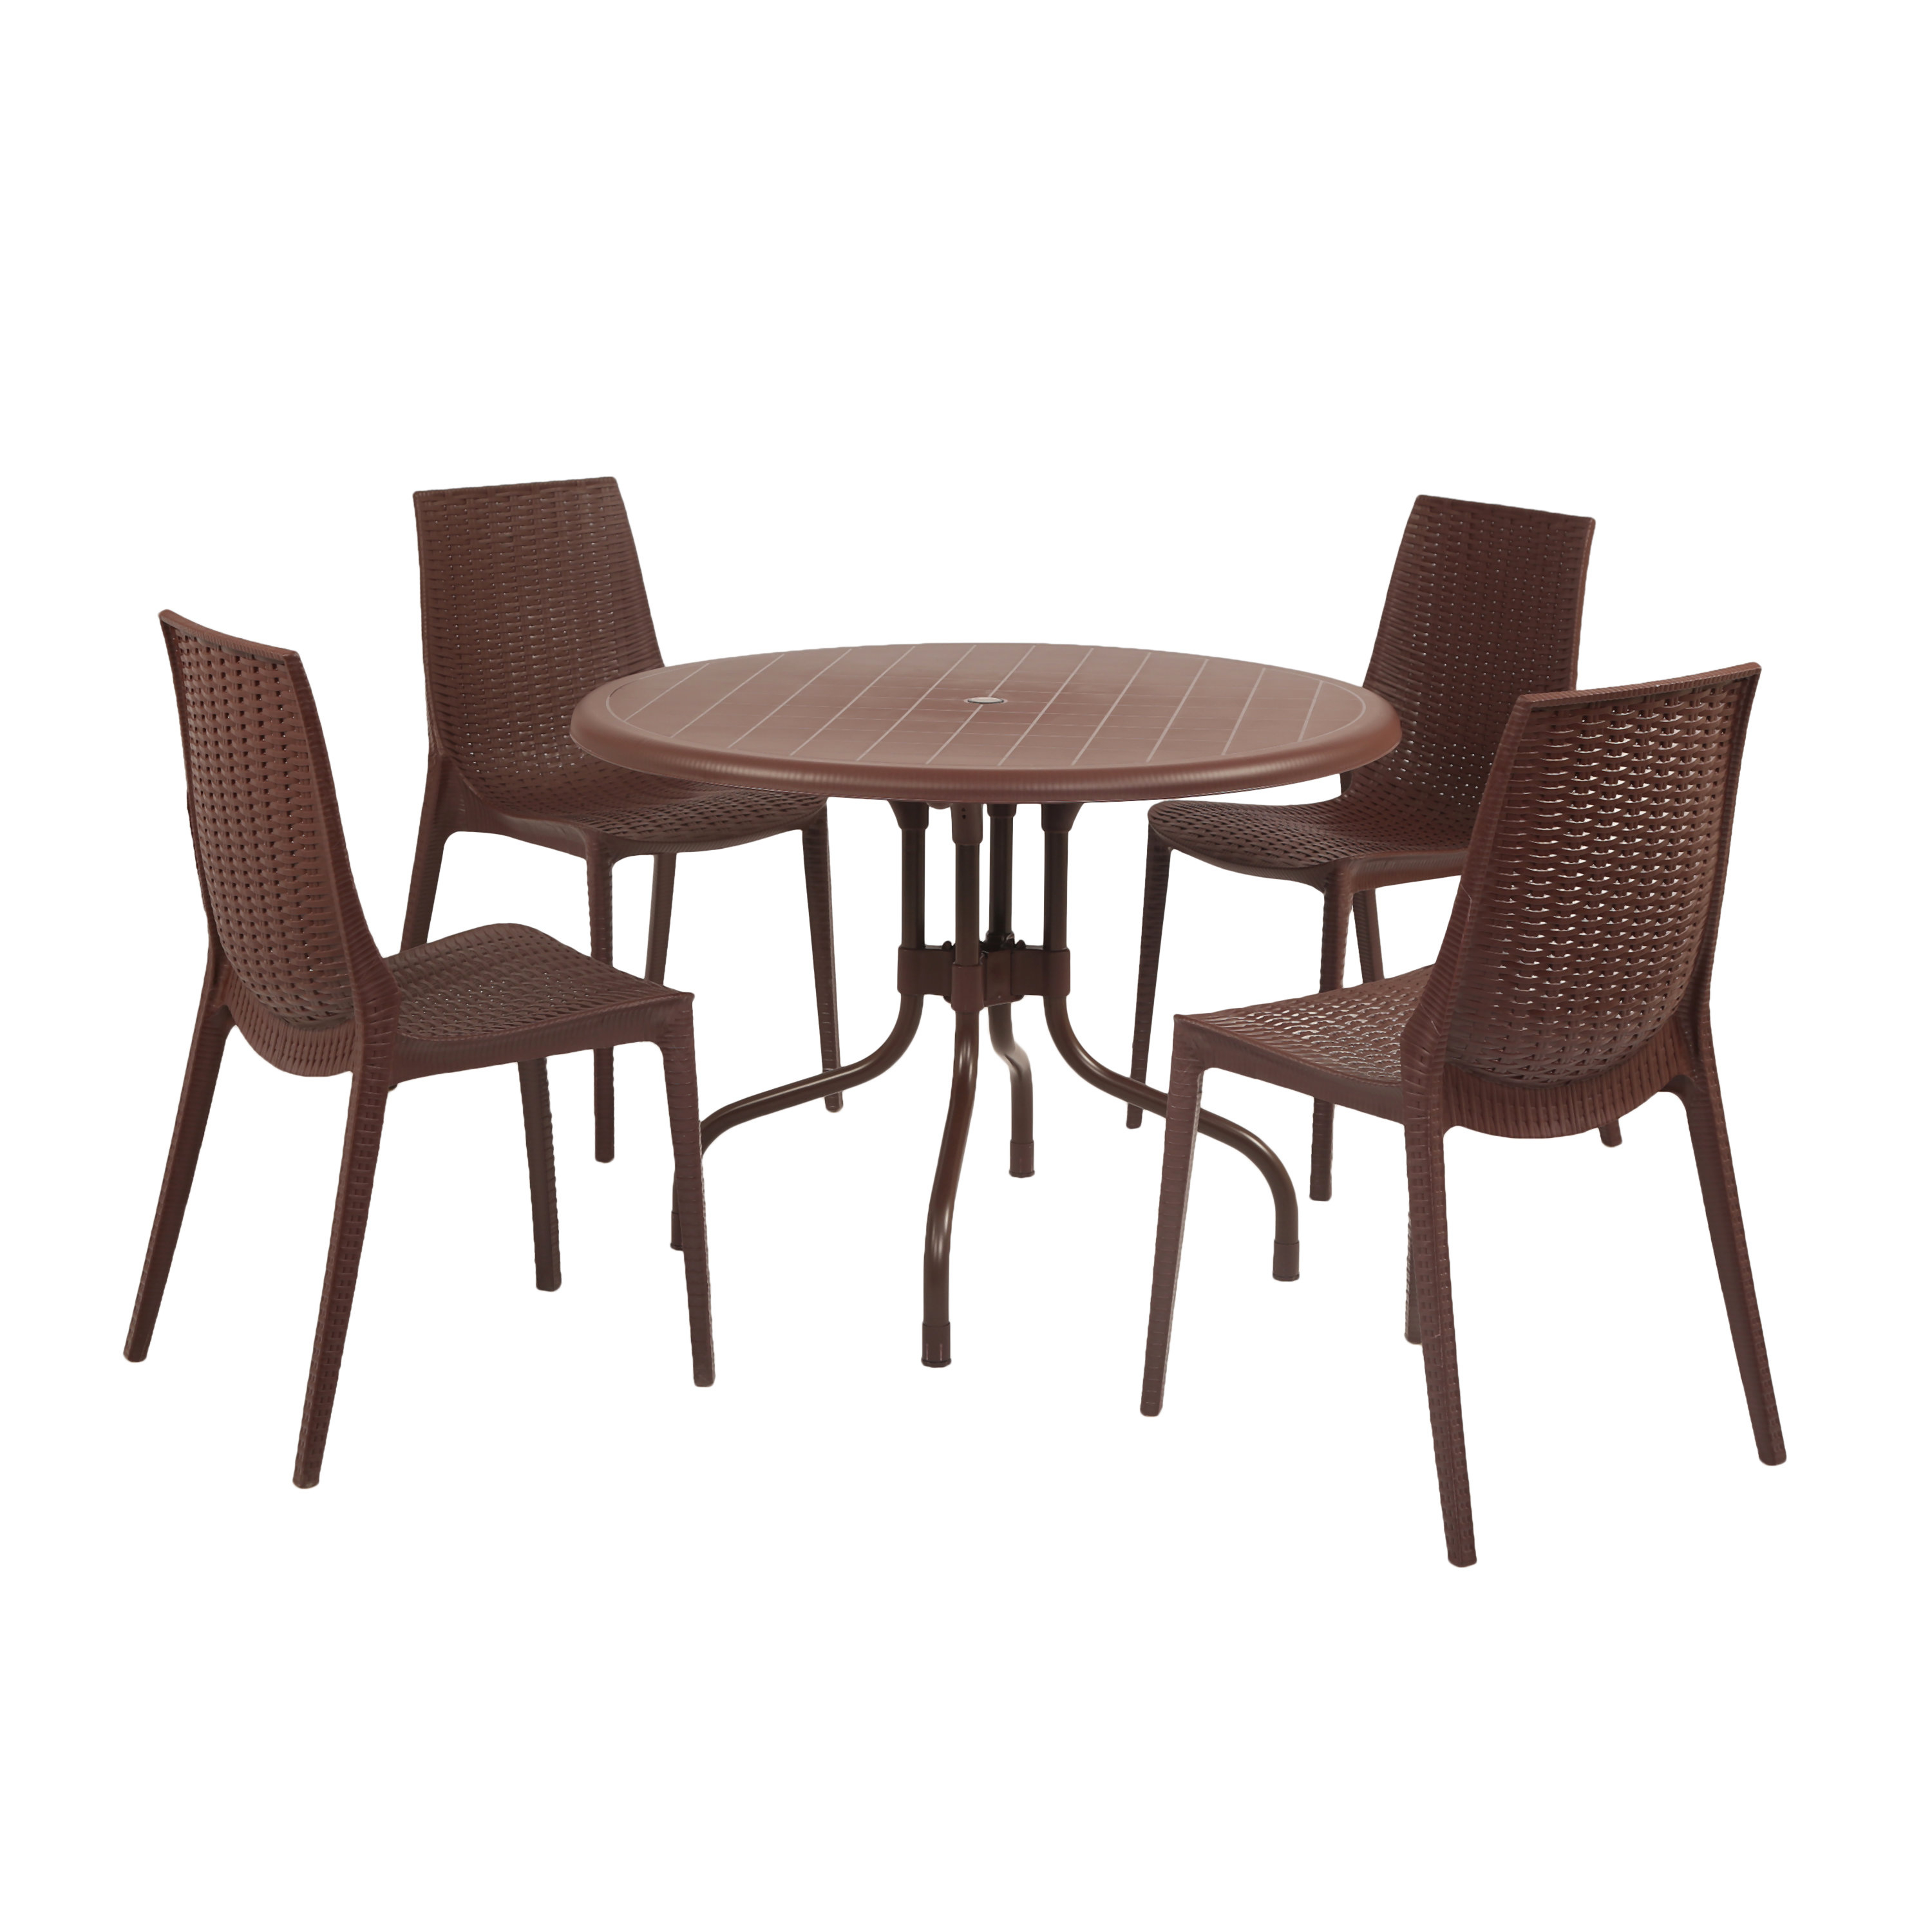 Miskell Commercial Grade 5 Piece Dining Set With Regard To Most Recently Released Miskell 3 Piece Dining Sets (Image 14 of 20)